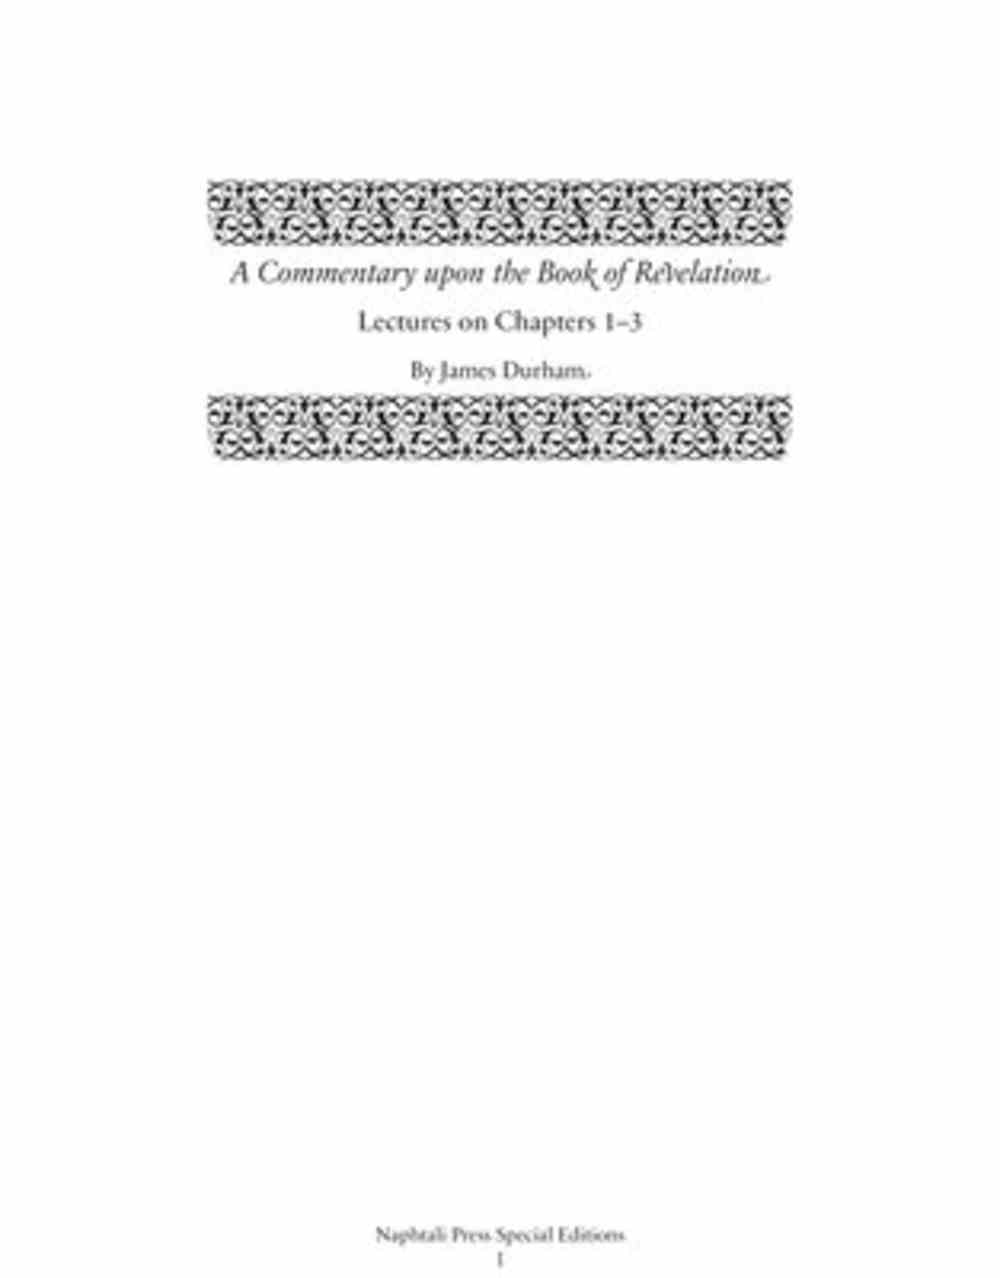 A Commentary Upon the Book of the Revelation: Lectures on Chapters 1-3 (Vol 1) Hardback